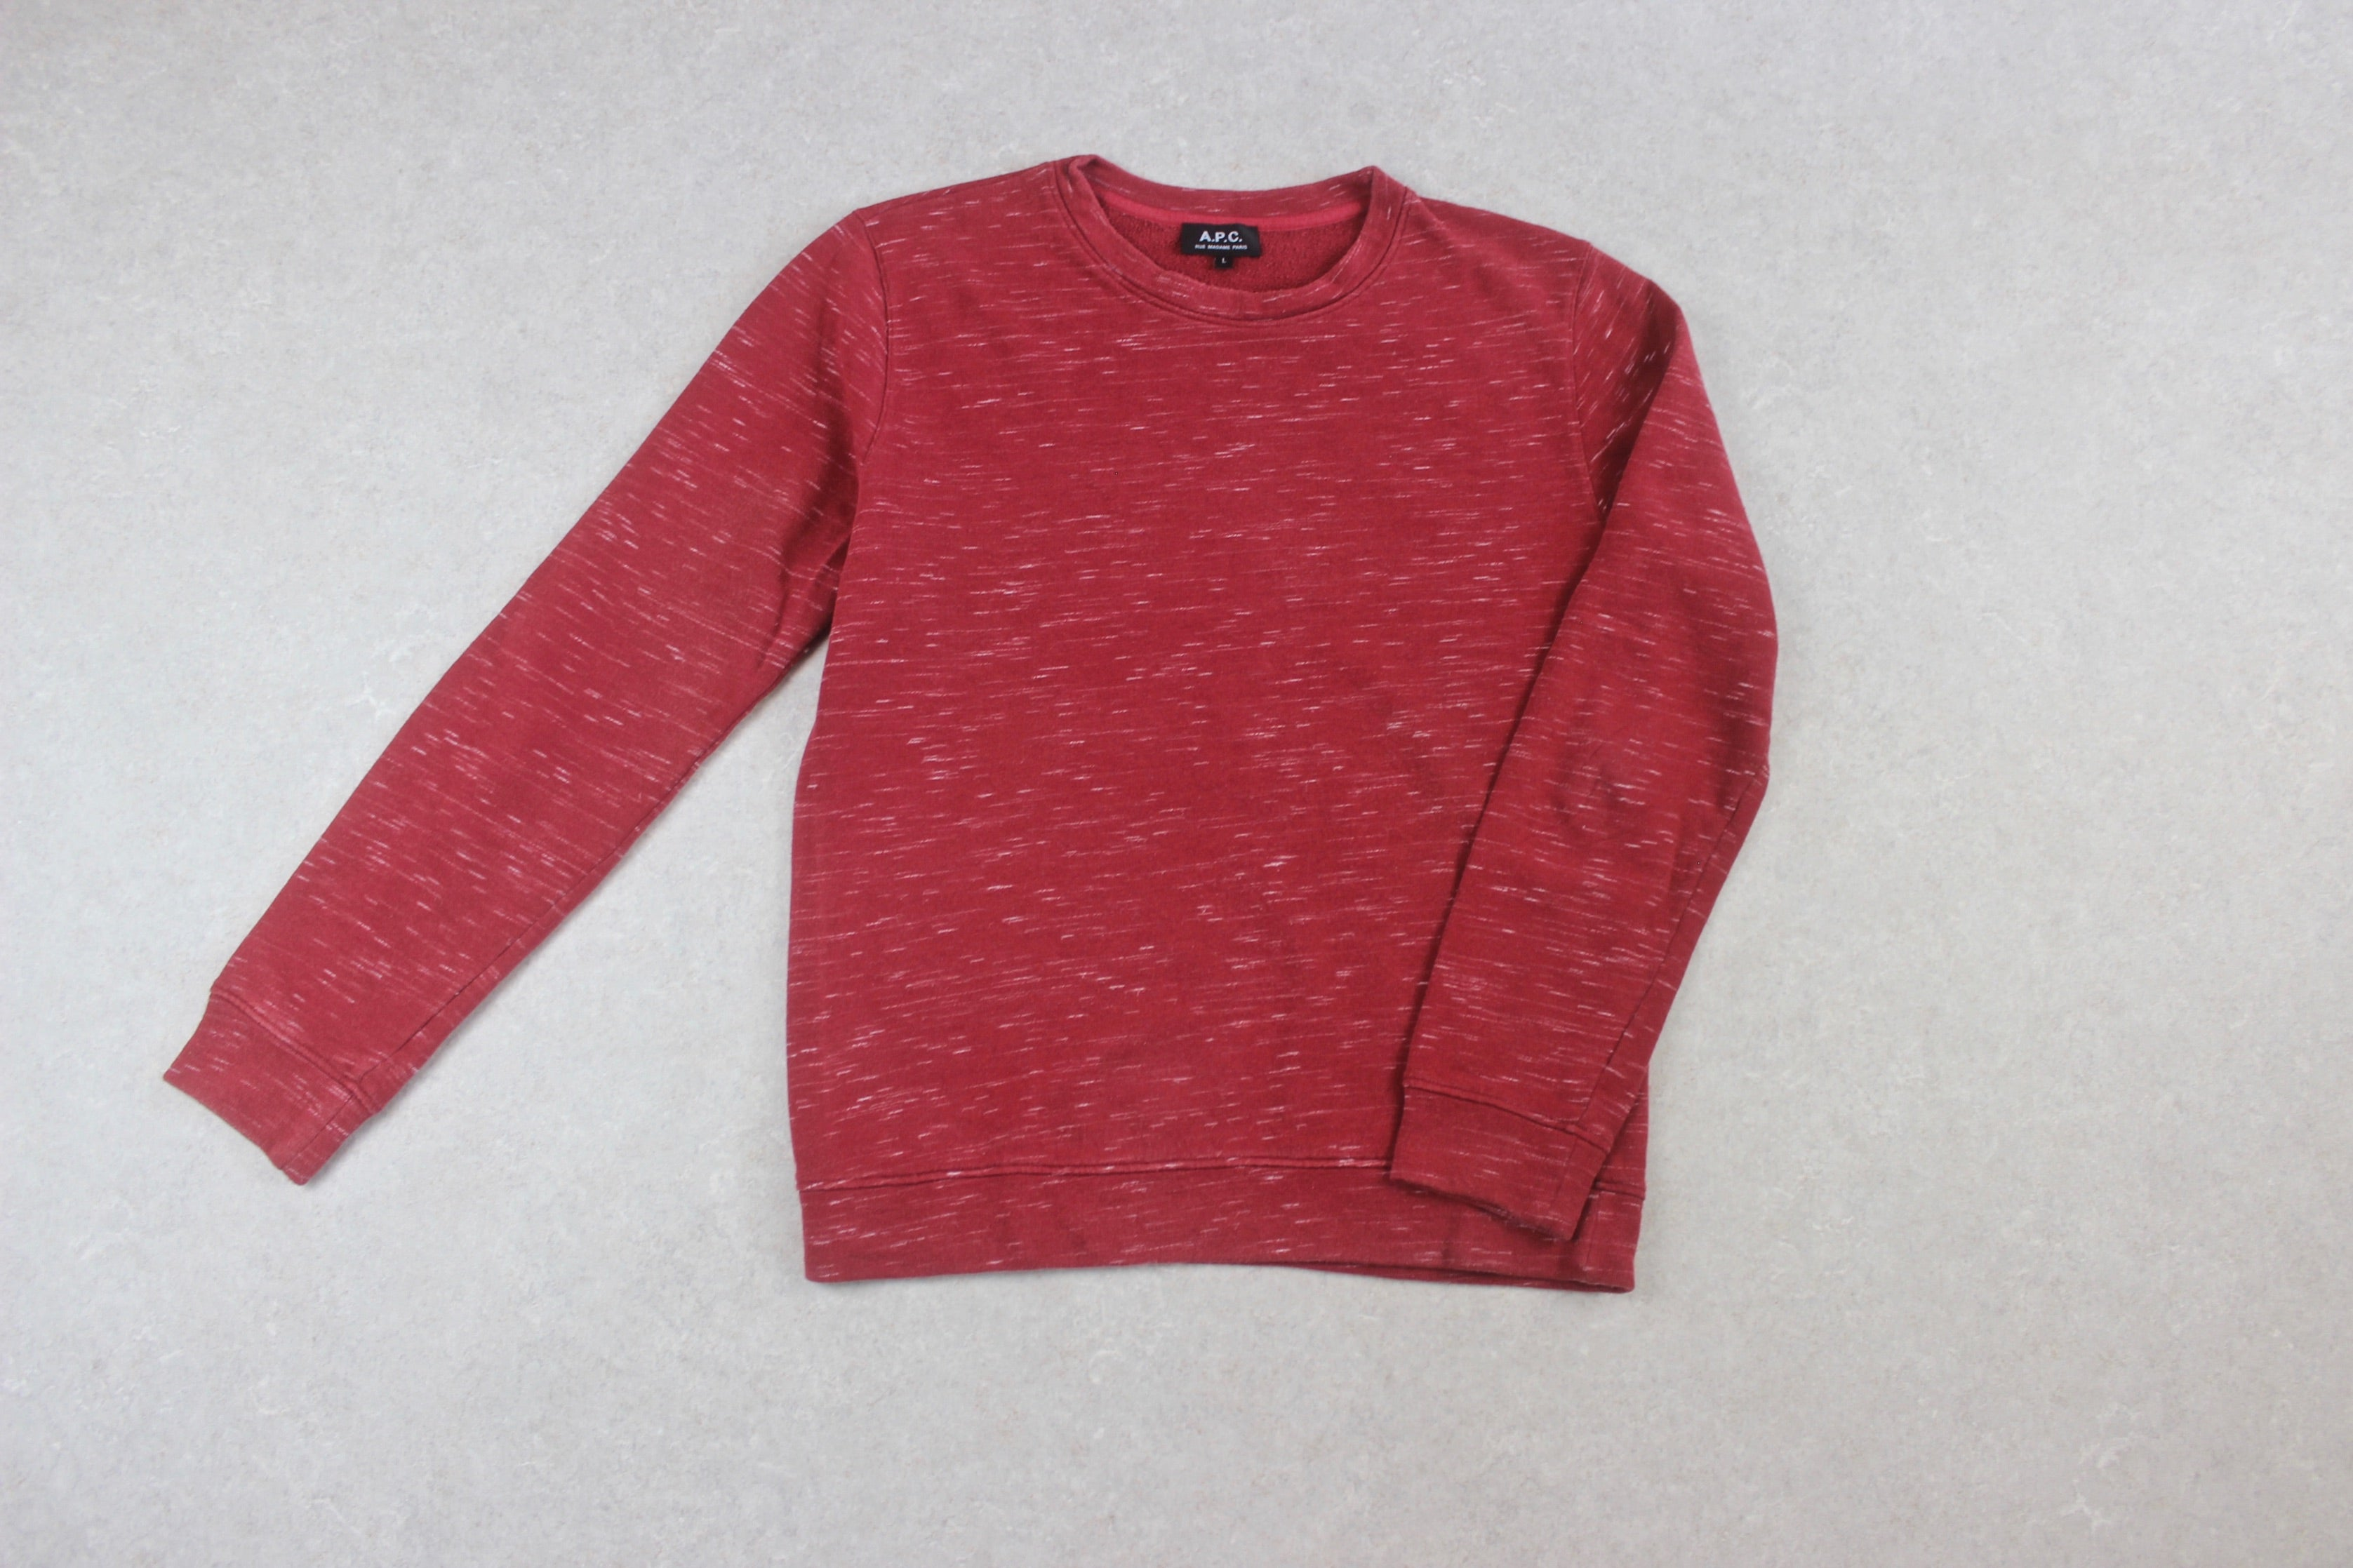 A.P.C. - Sweatshirt Jumper - Red - Large